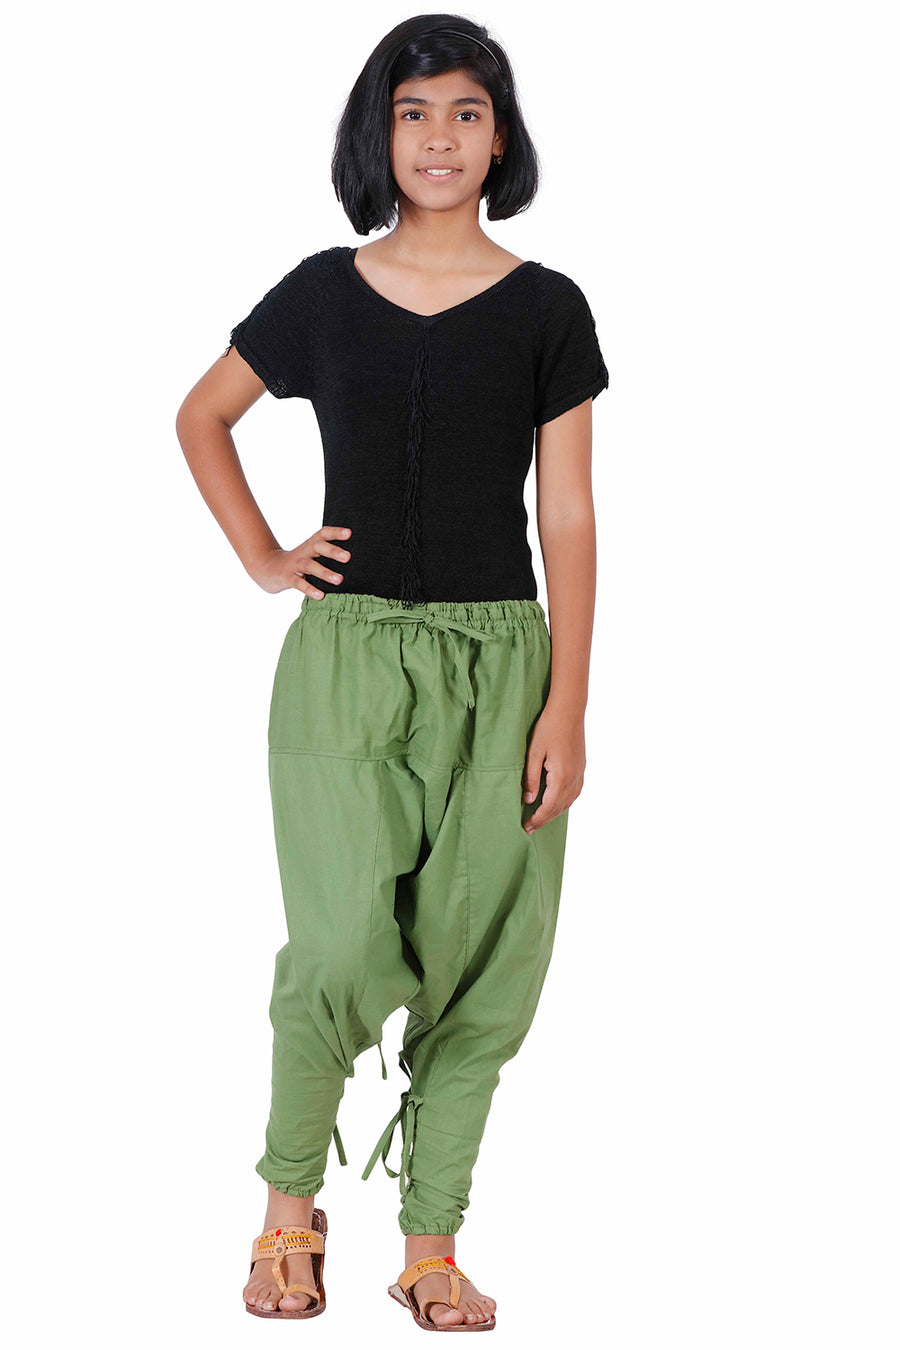 dbb8204fb Kids Harem Pants, Kids Parachute Pants, Green Harem Pants for kids, ...